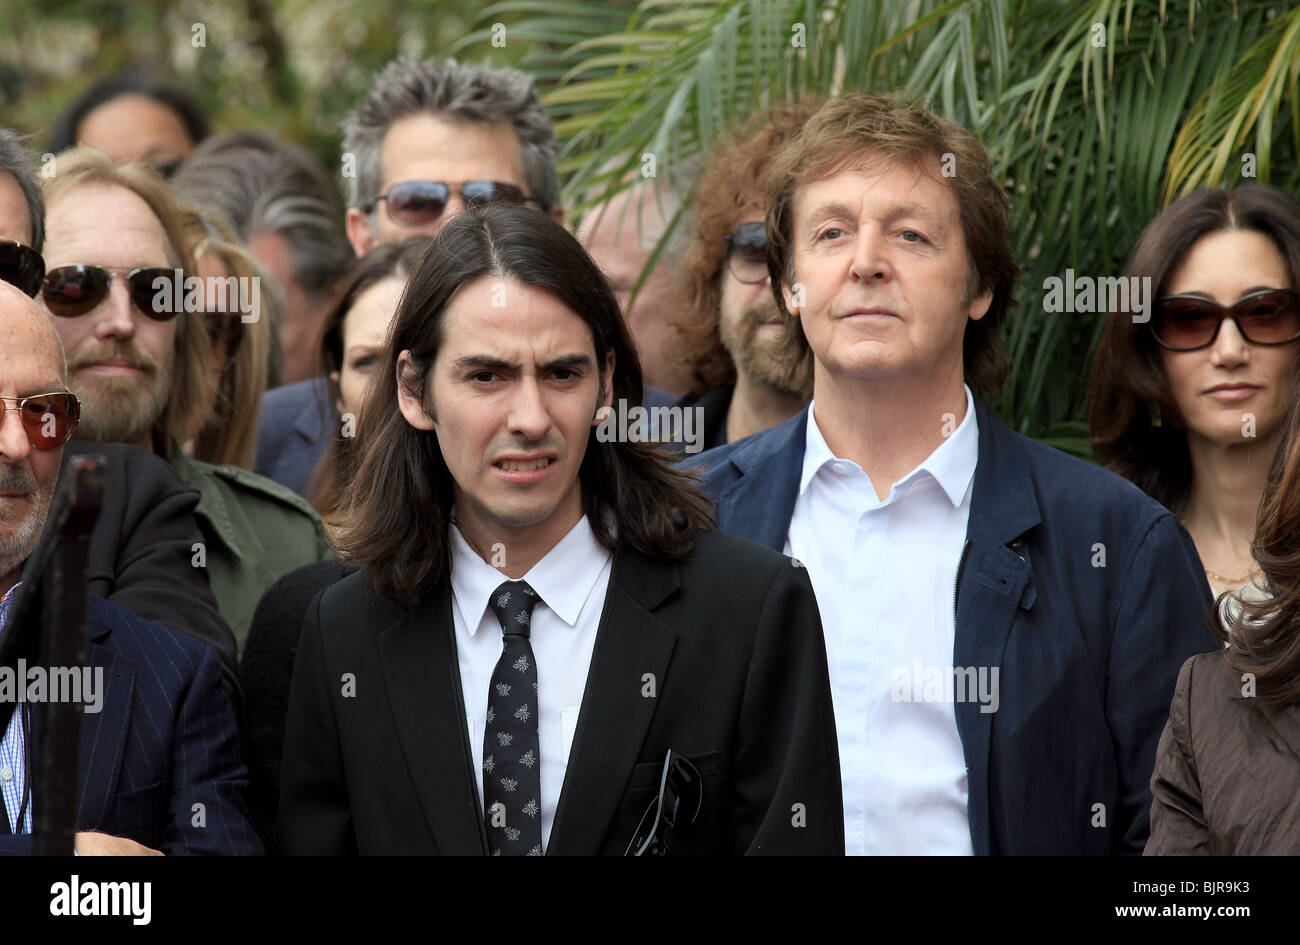 TOM PETTY DHANI HARRISON PAUL MCCARTNEY NANCY SHEVELL GEORGE HONORED POSTHUMOUSLY WITH A STAR ON THE HOLLYWOOD WALK